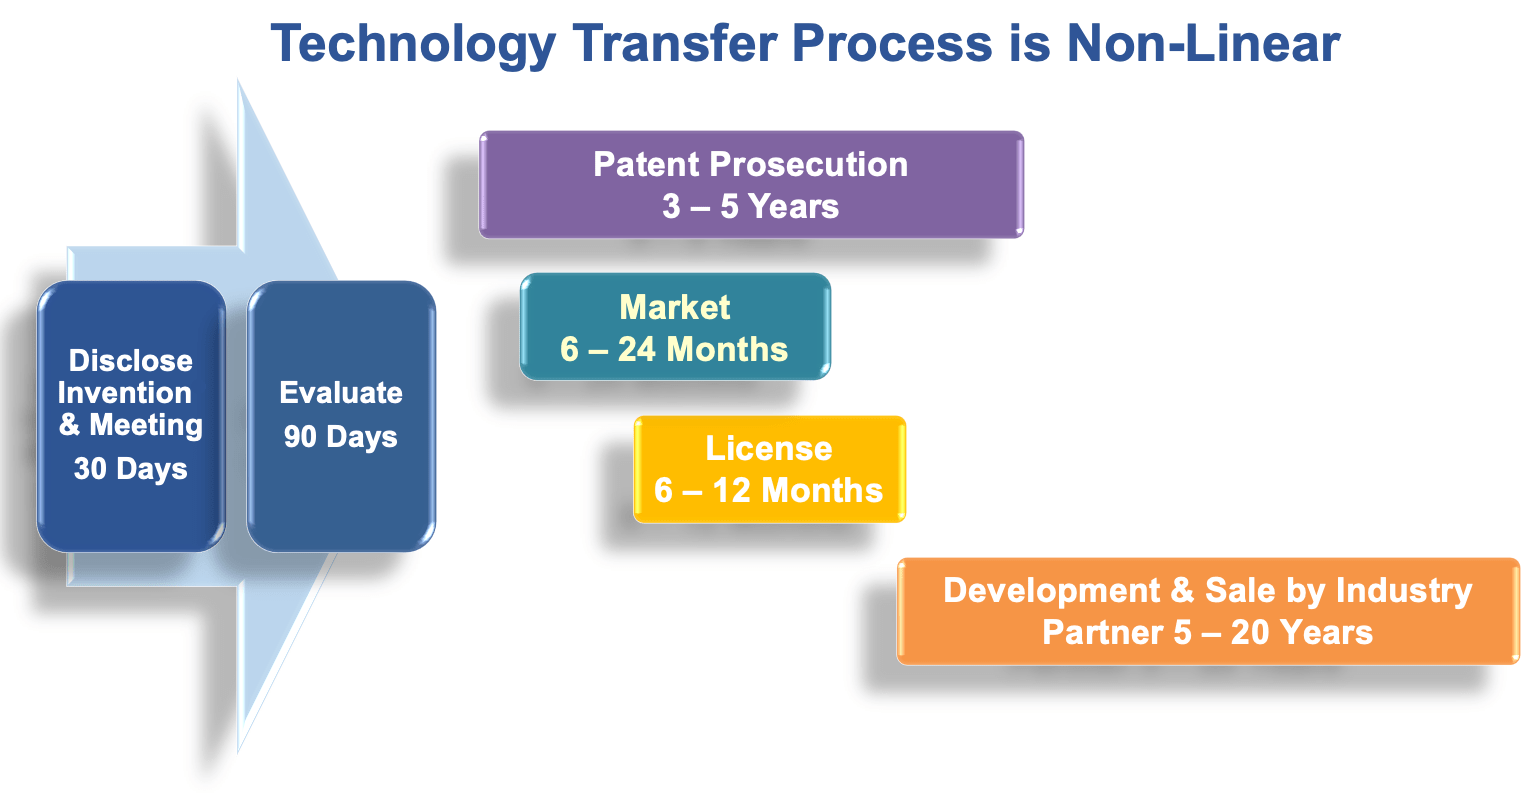 Technology Transfer process is non-linear